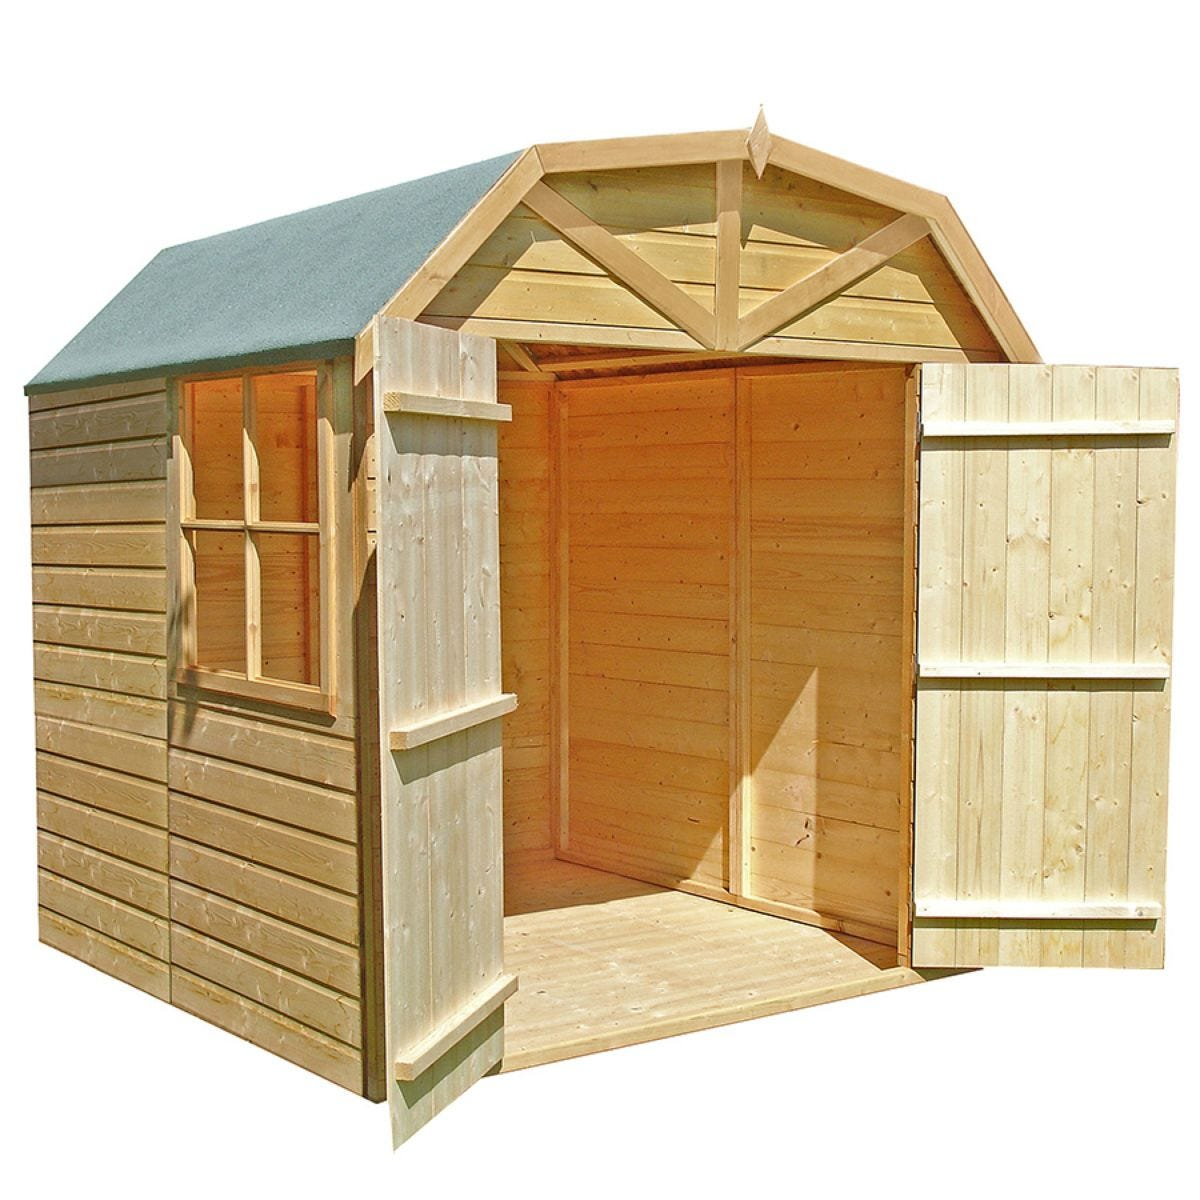 Shire 7' x 7' T&G Wooden Garden Barn Shed